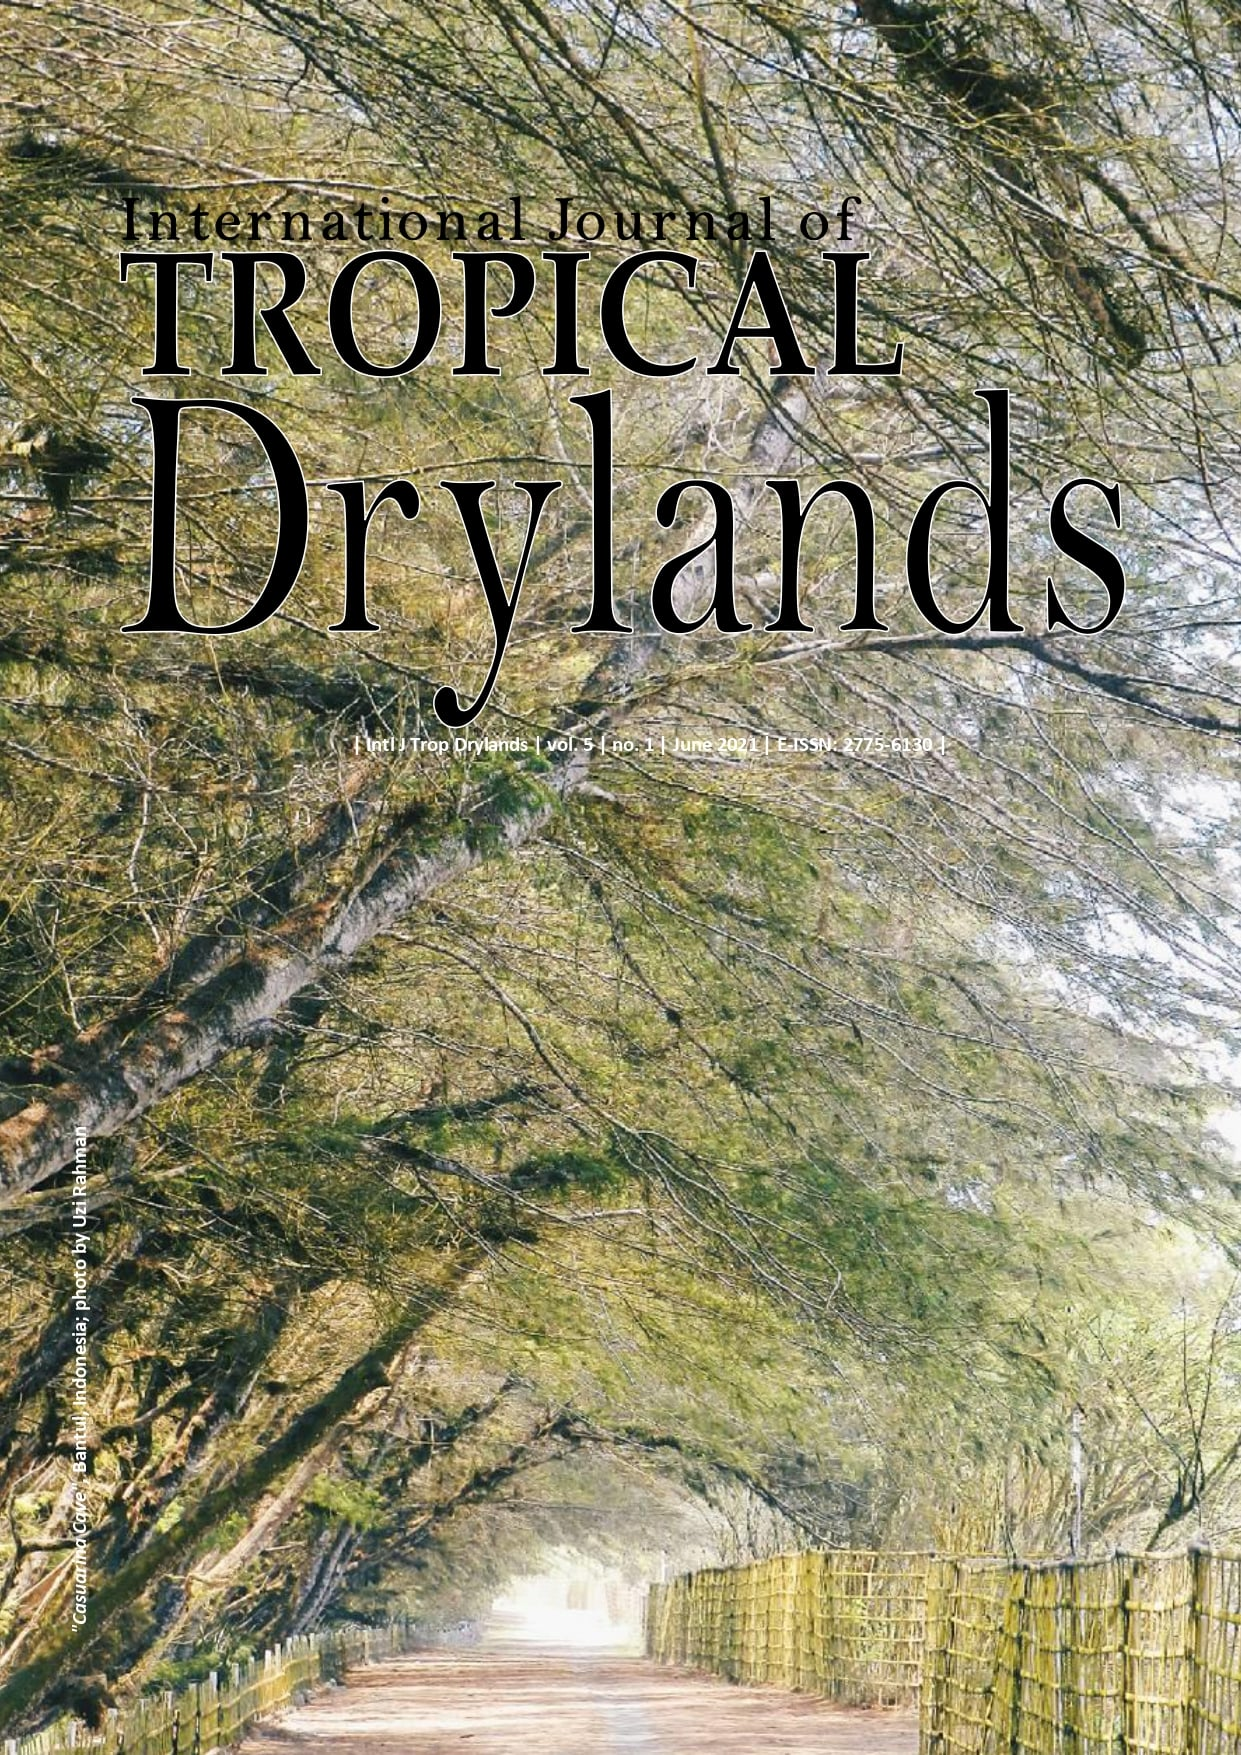 International Journal of Tropical Drylands